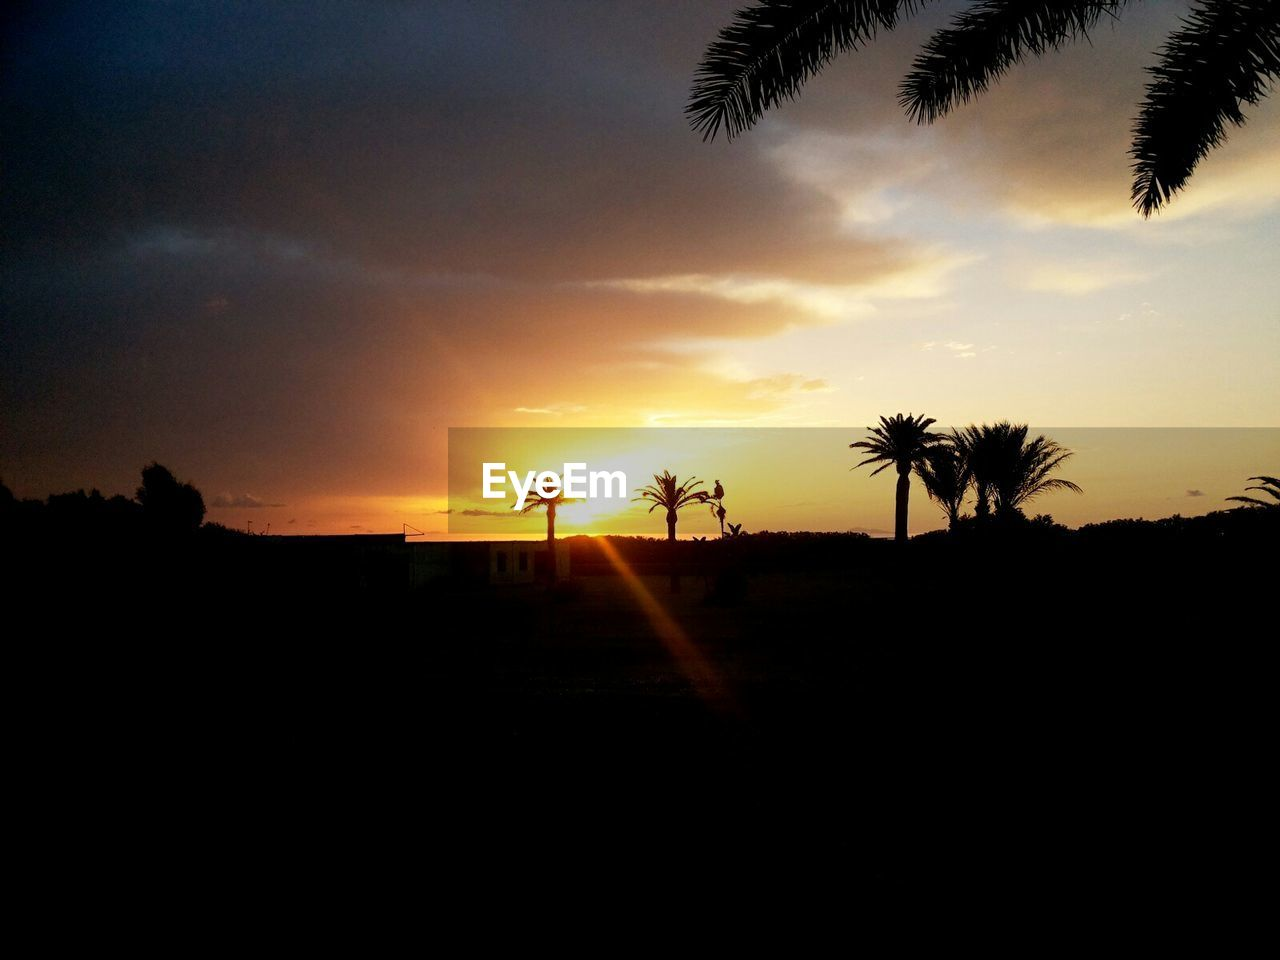 sunset, silhouette, palm tree, tree, scenics, beauty in nature, nature, tranquil scene, orange color, tranquility, sky, landscape, sun, no people, outdoors, growth, day